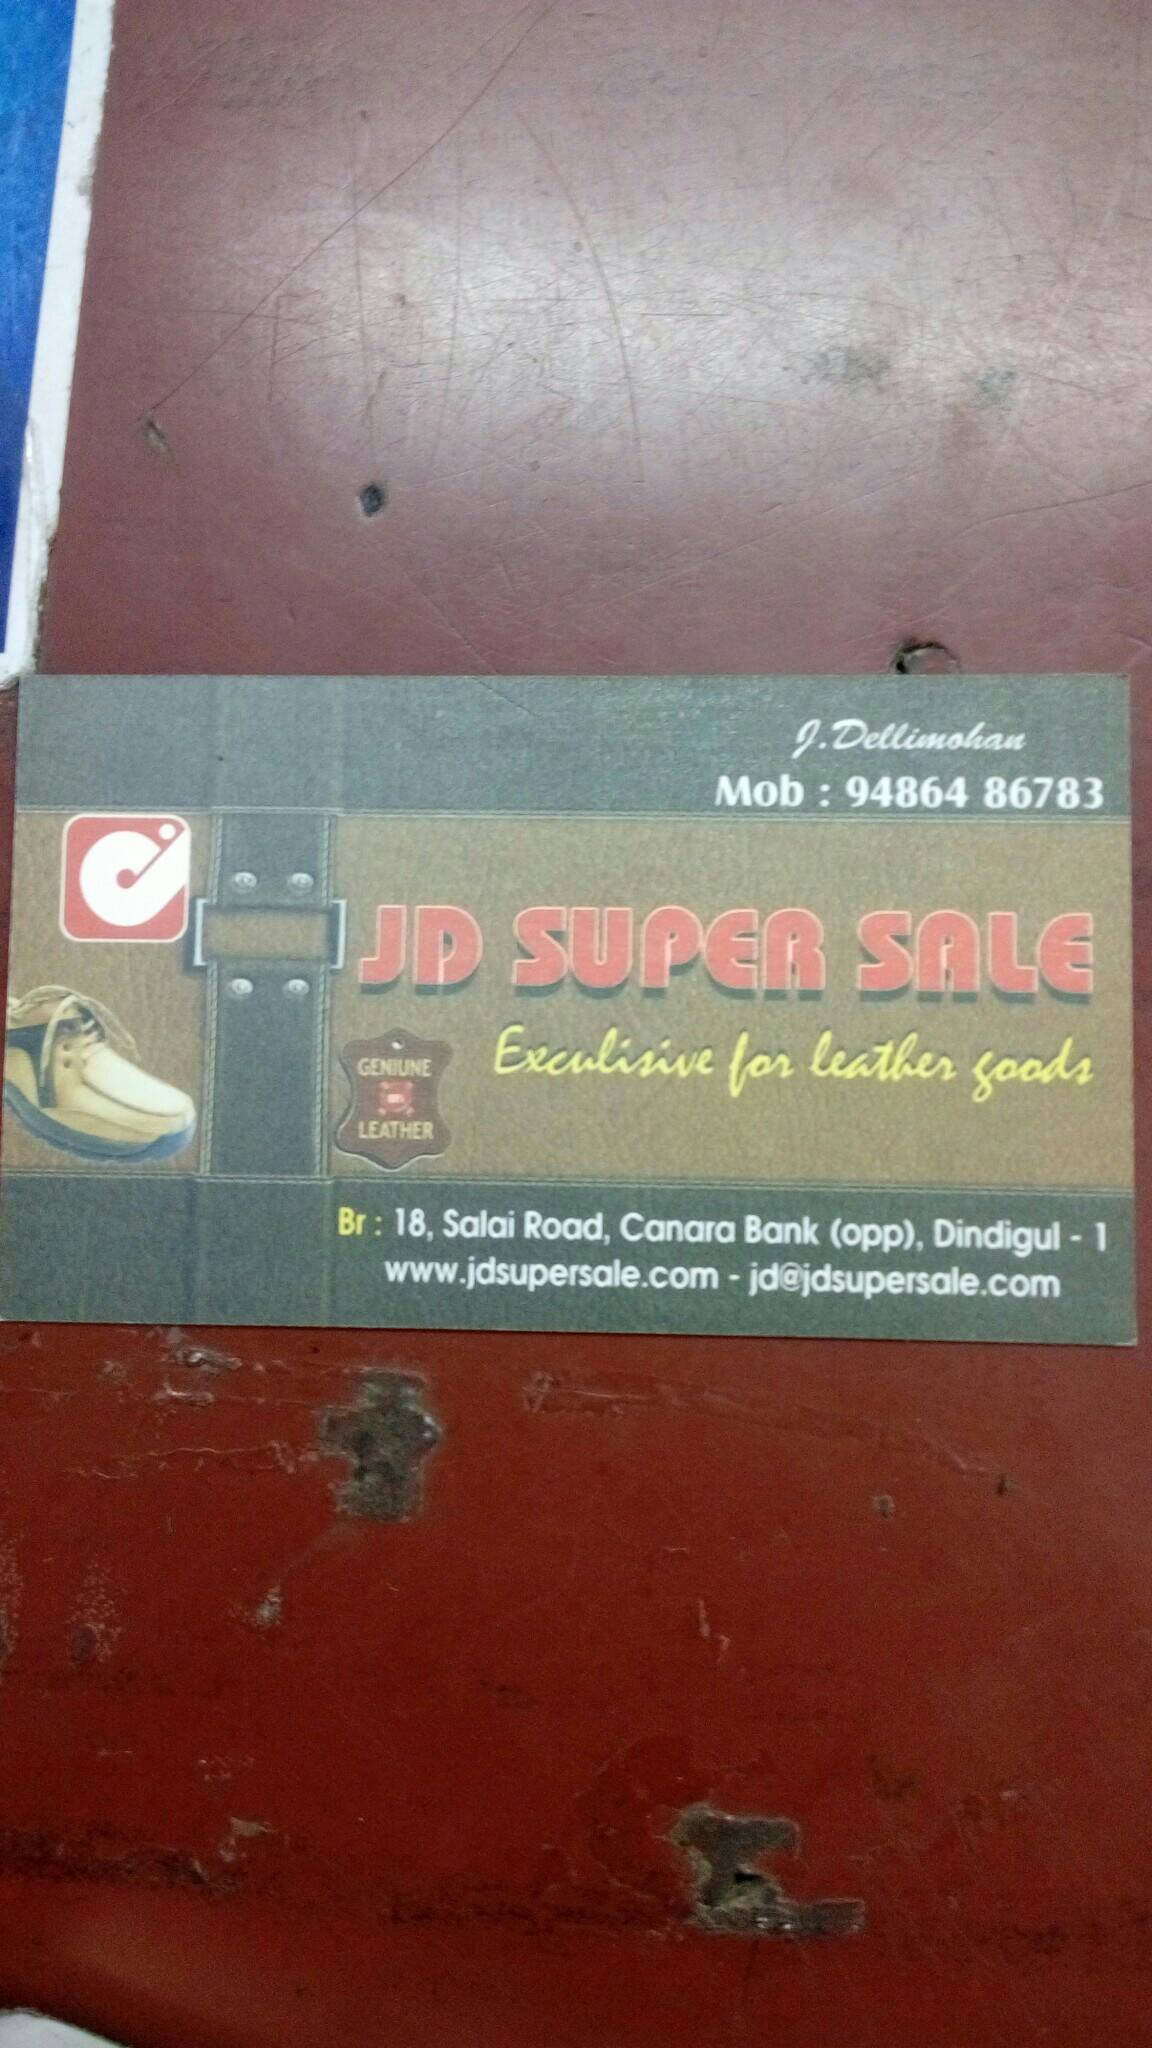 JD Super Sale 9486486783